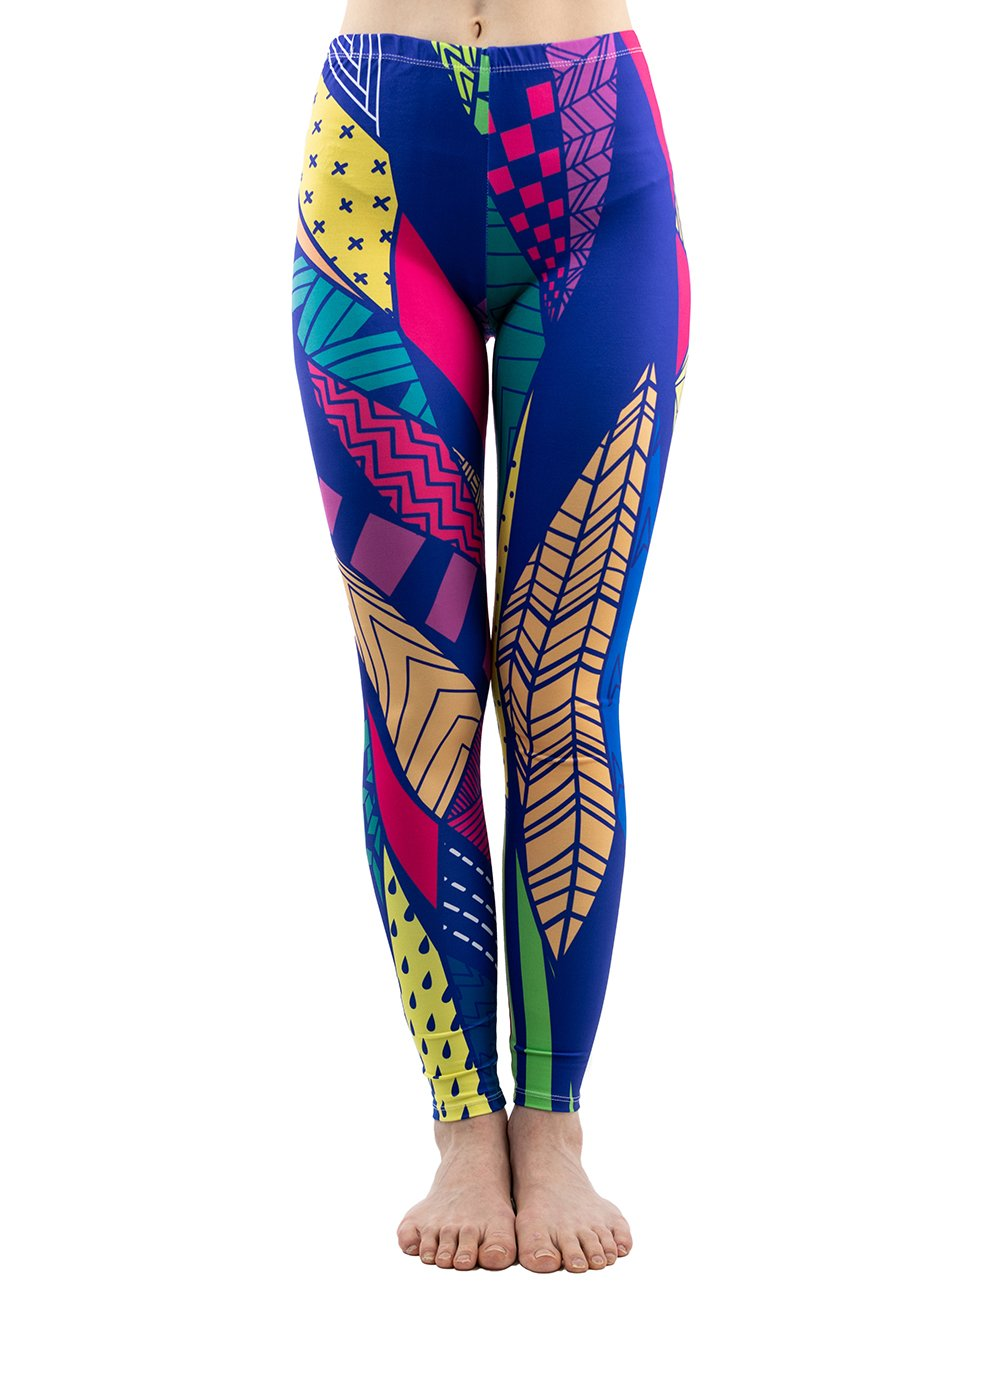 PINK PLOT Women's Yoga Gym Popular Printed Buttery Soft Leggings Fashion Thin Pants 20+Colors (Colorful Patches, One Size-Fit XS-L)